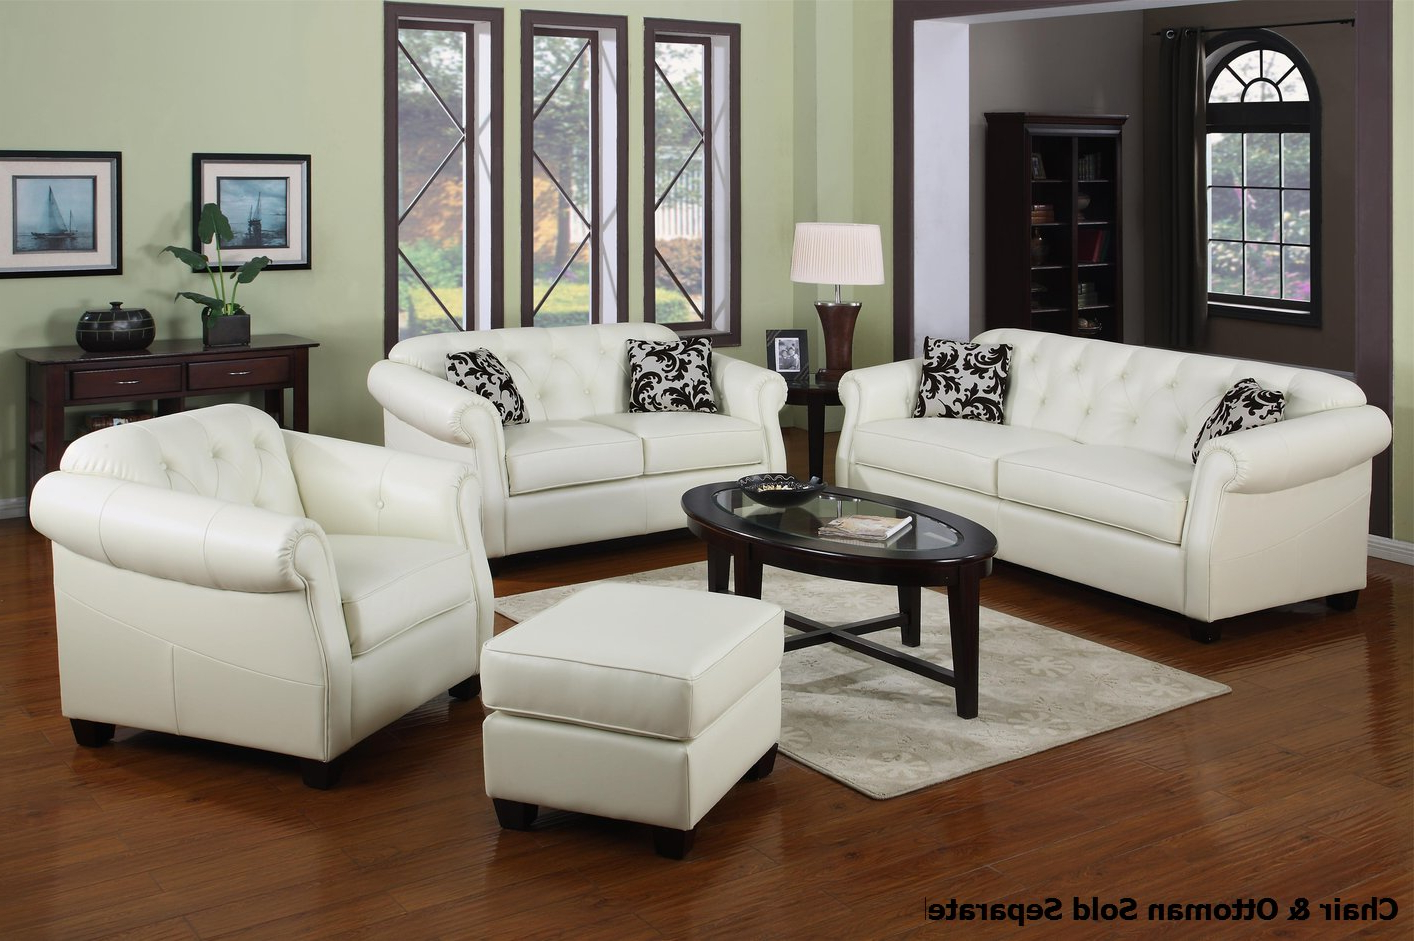 Fashionable For And Loveseat Covers Couches Combo Chair Set Double Small Costco Within Sofa Loveseat And Chair Set (View 19 of 20)